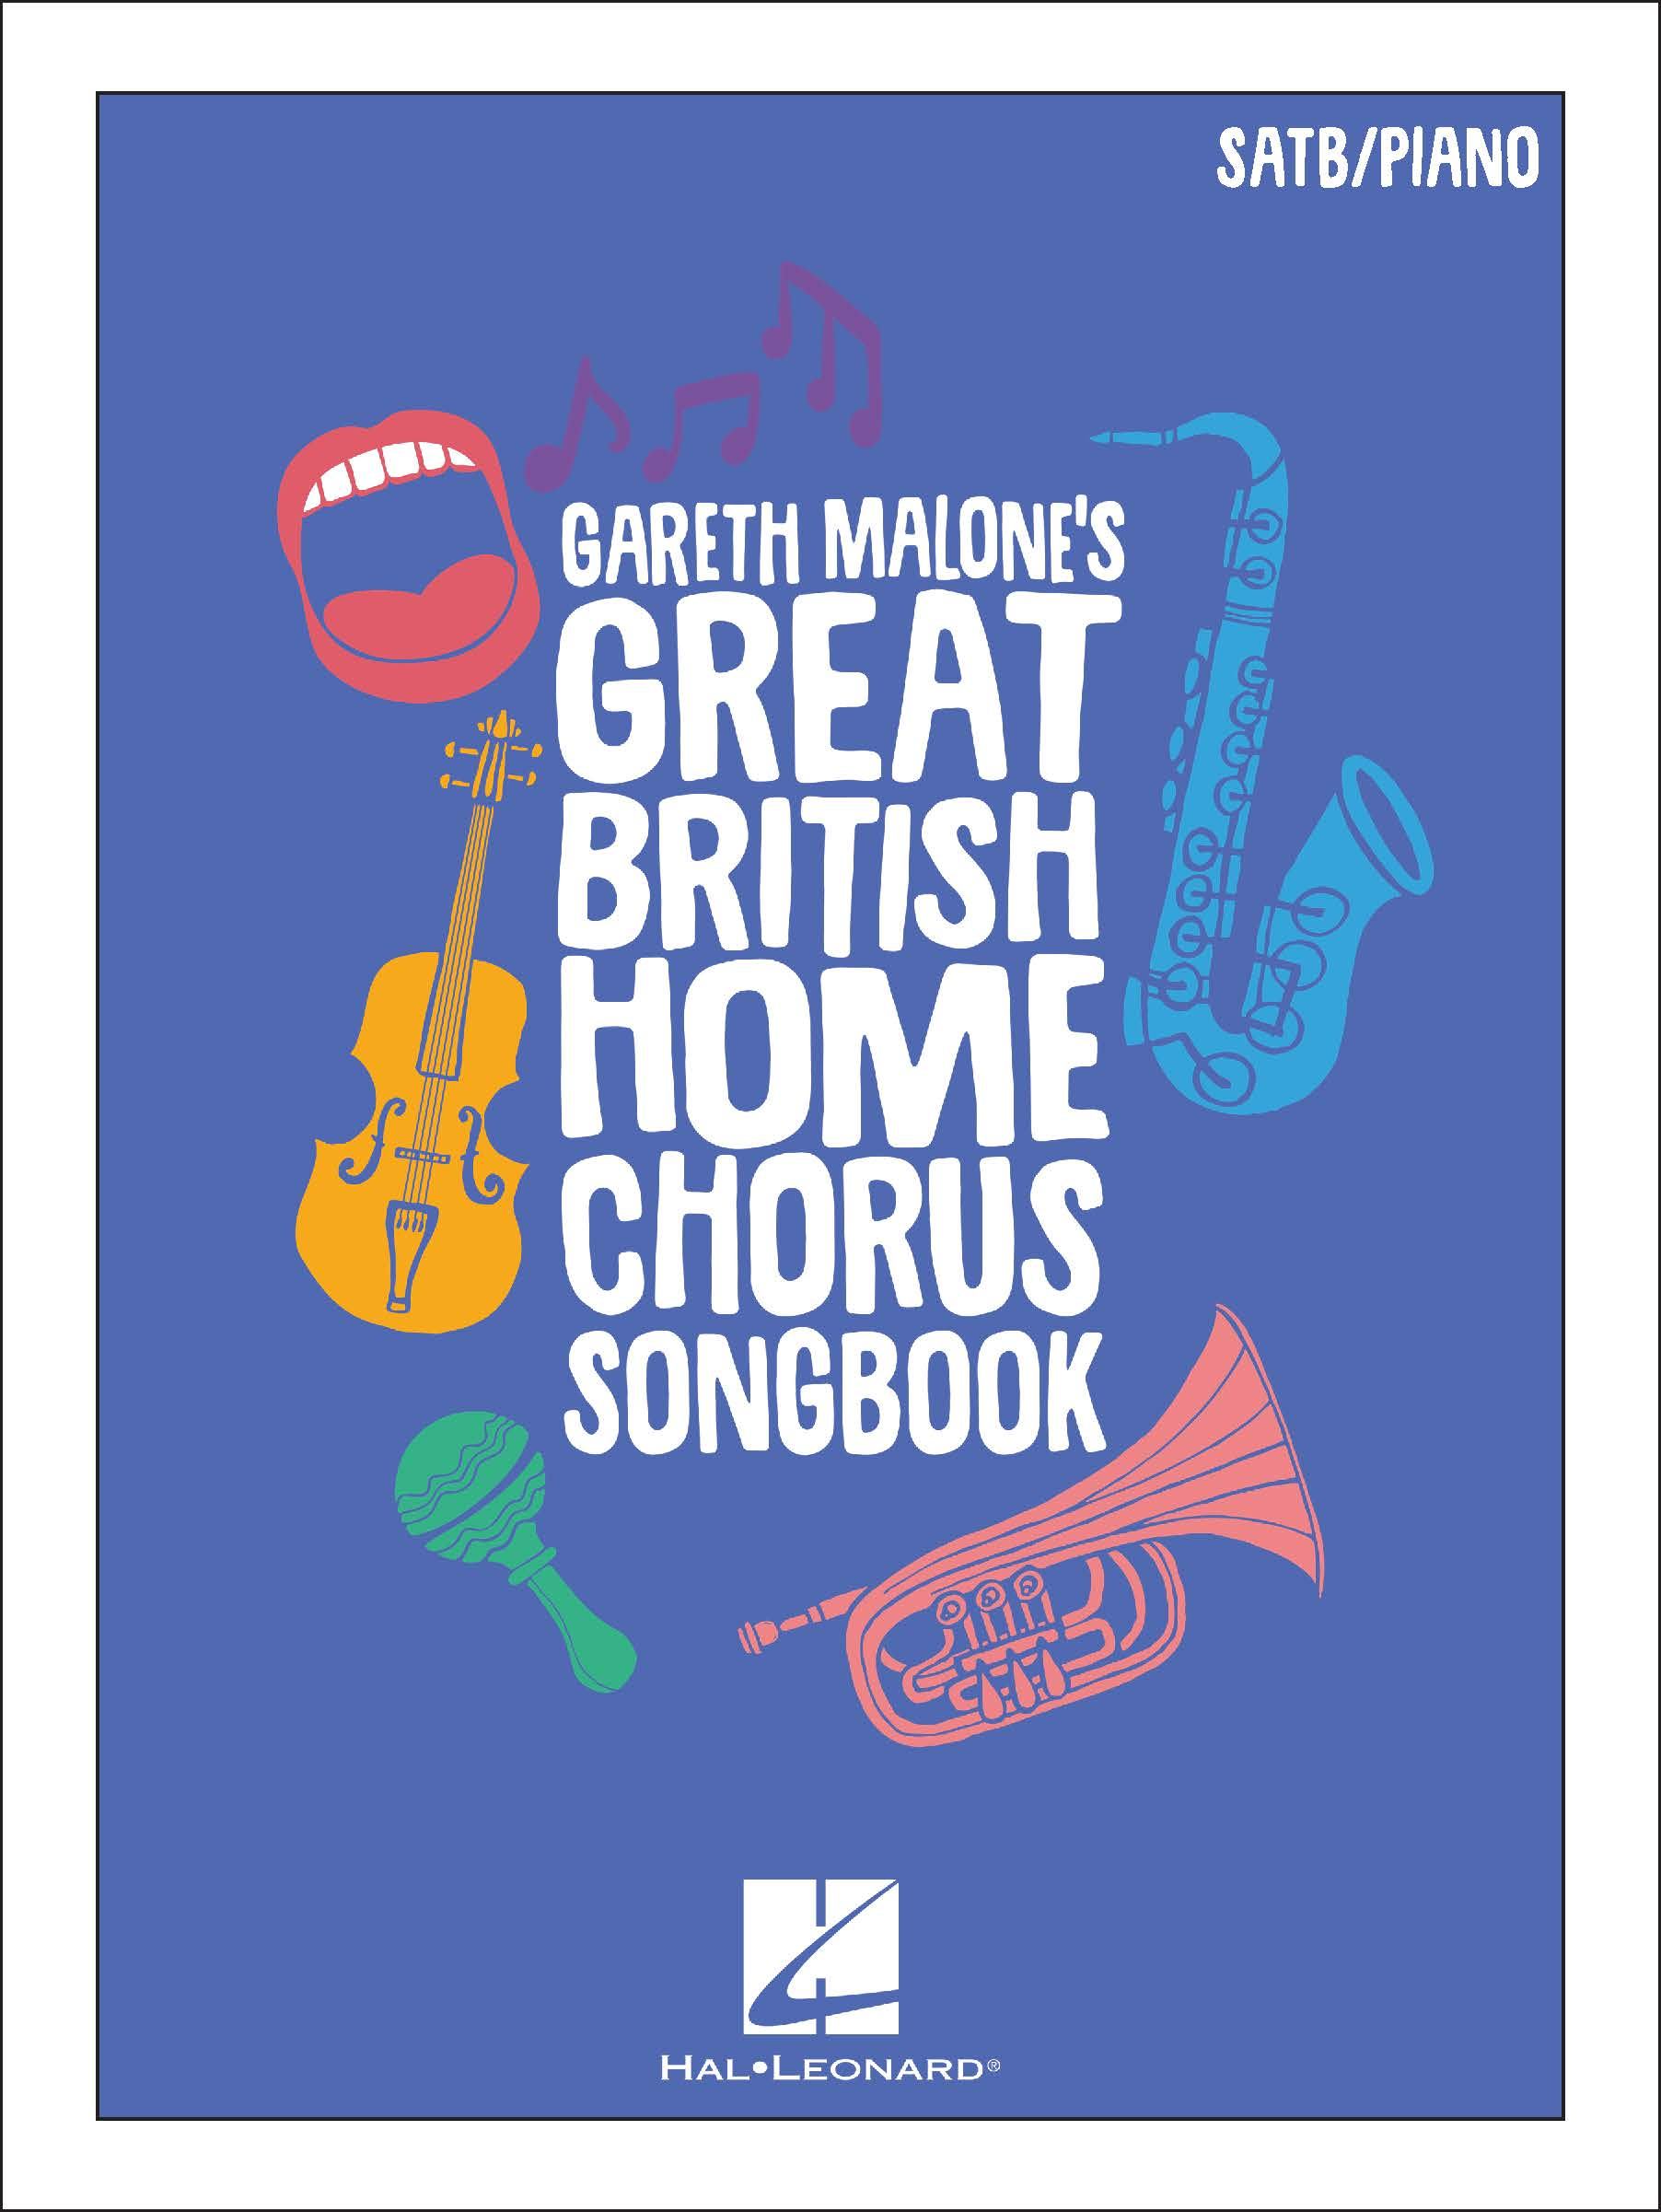 Gareth Malone's Great British Home Chorus Songbook: Mixed Choir and Piano/Organ: